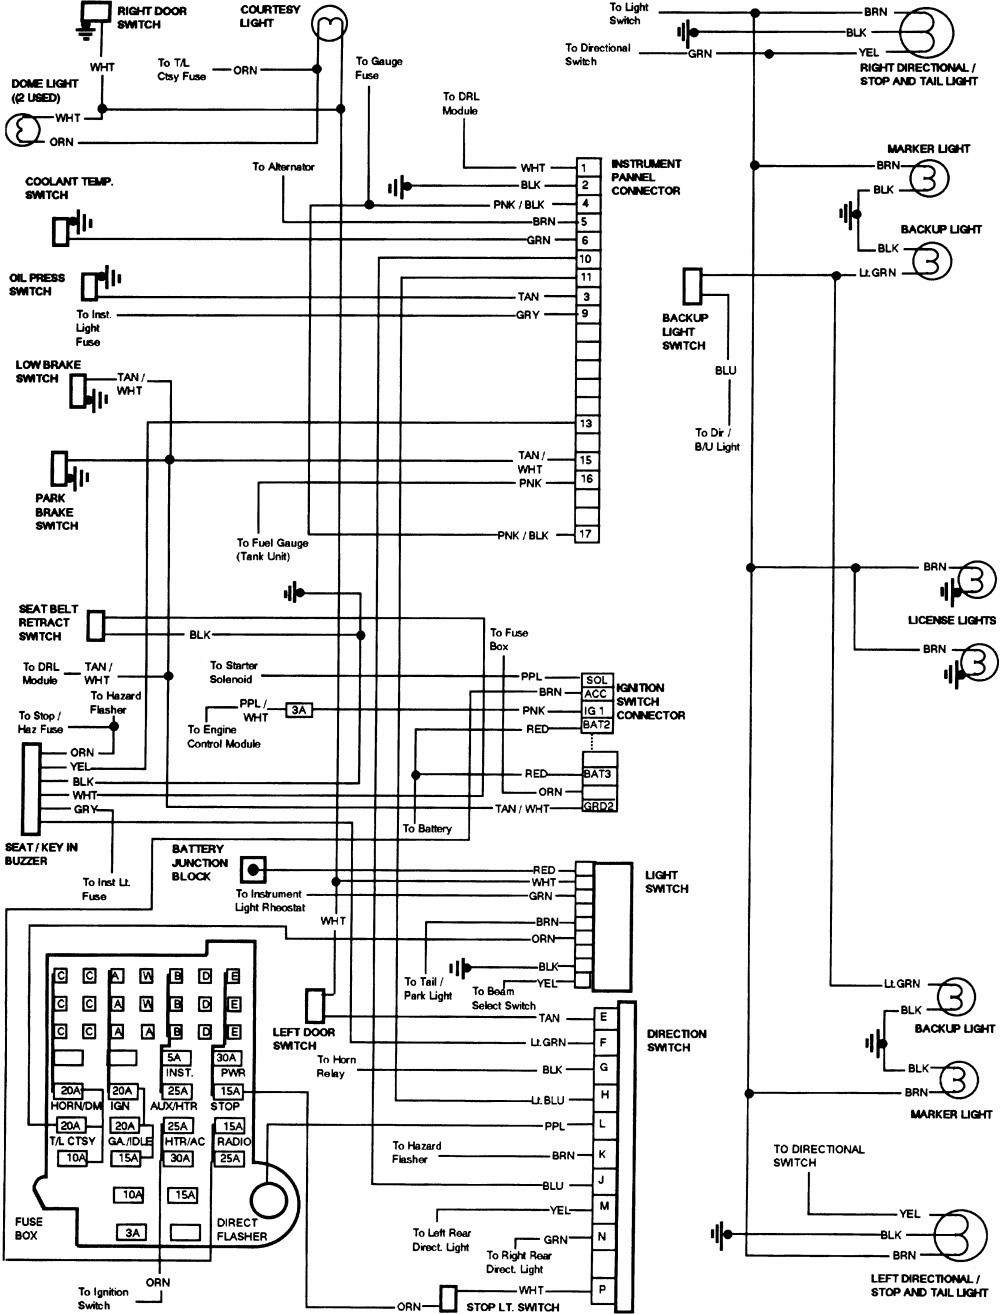 1985 Chevy Truck Wiring Diagram Free